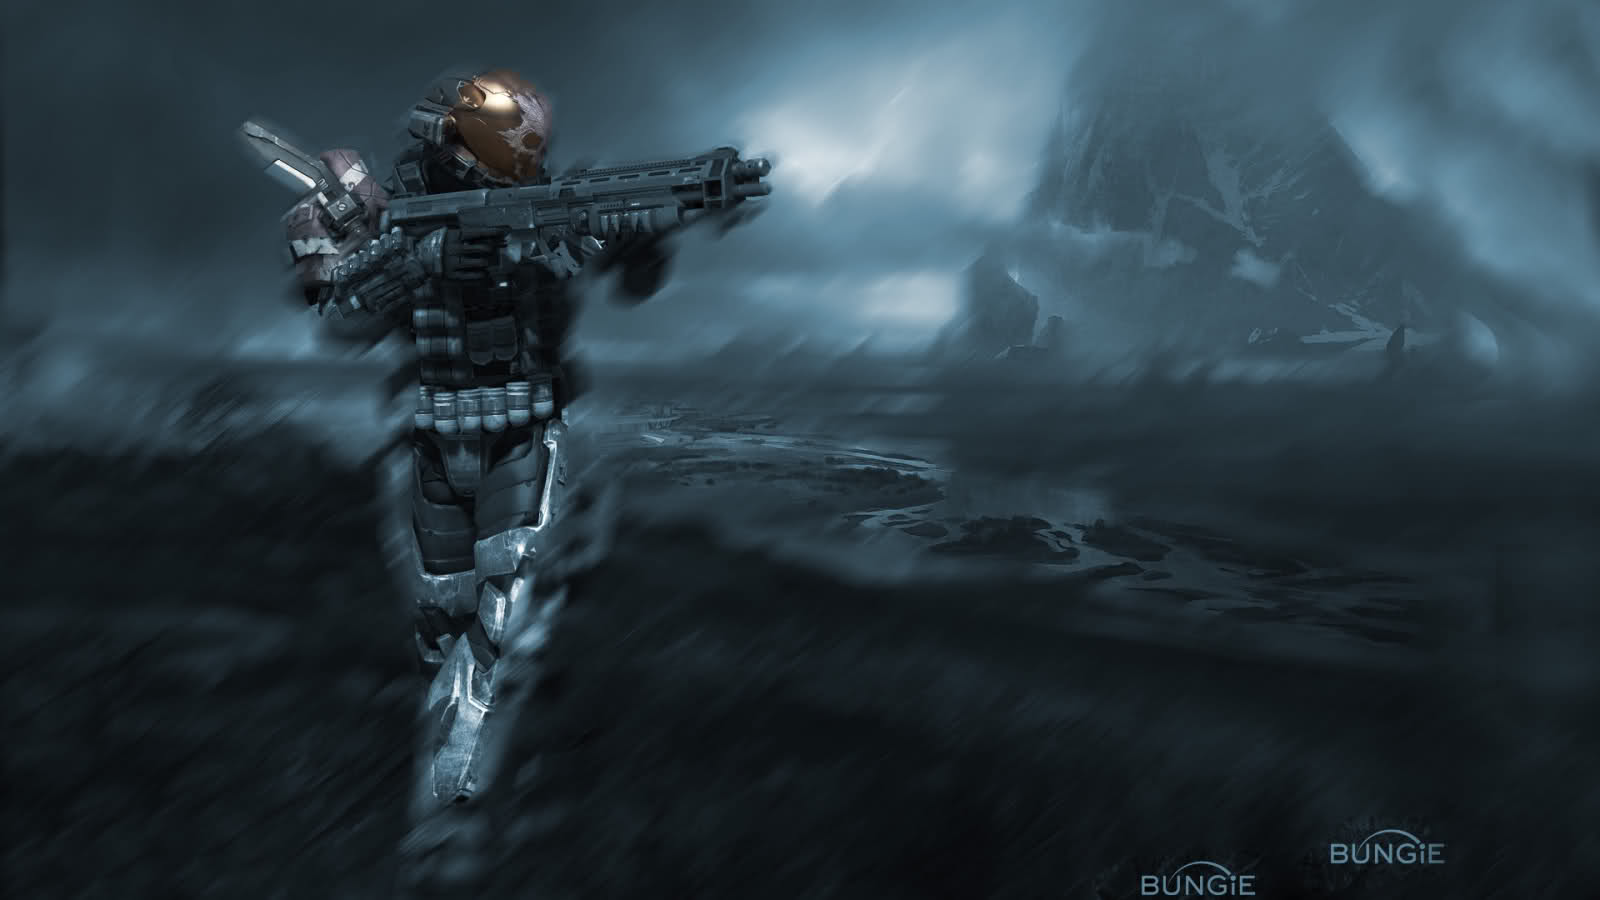 49+] Halo Reach Emile Wallpapers on WallpaperSafari